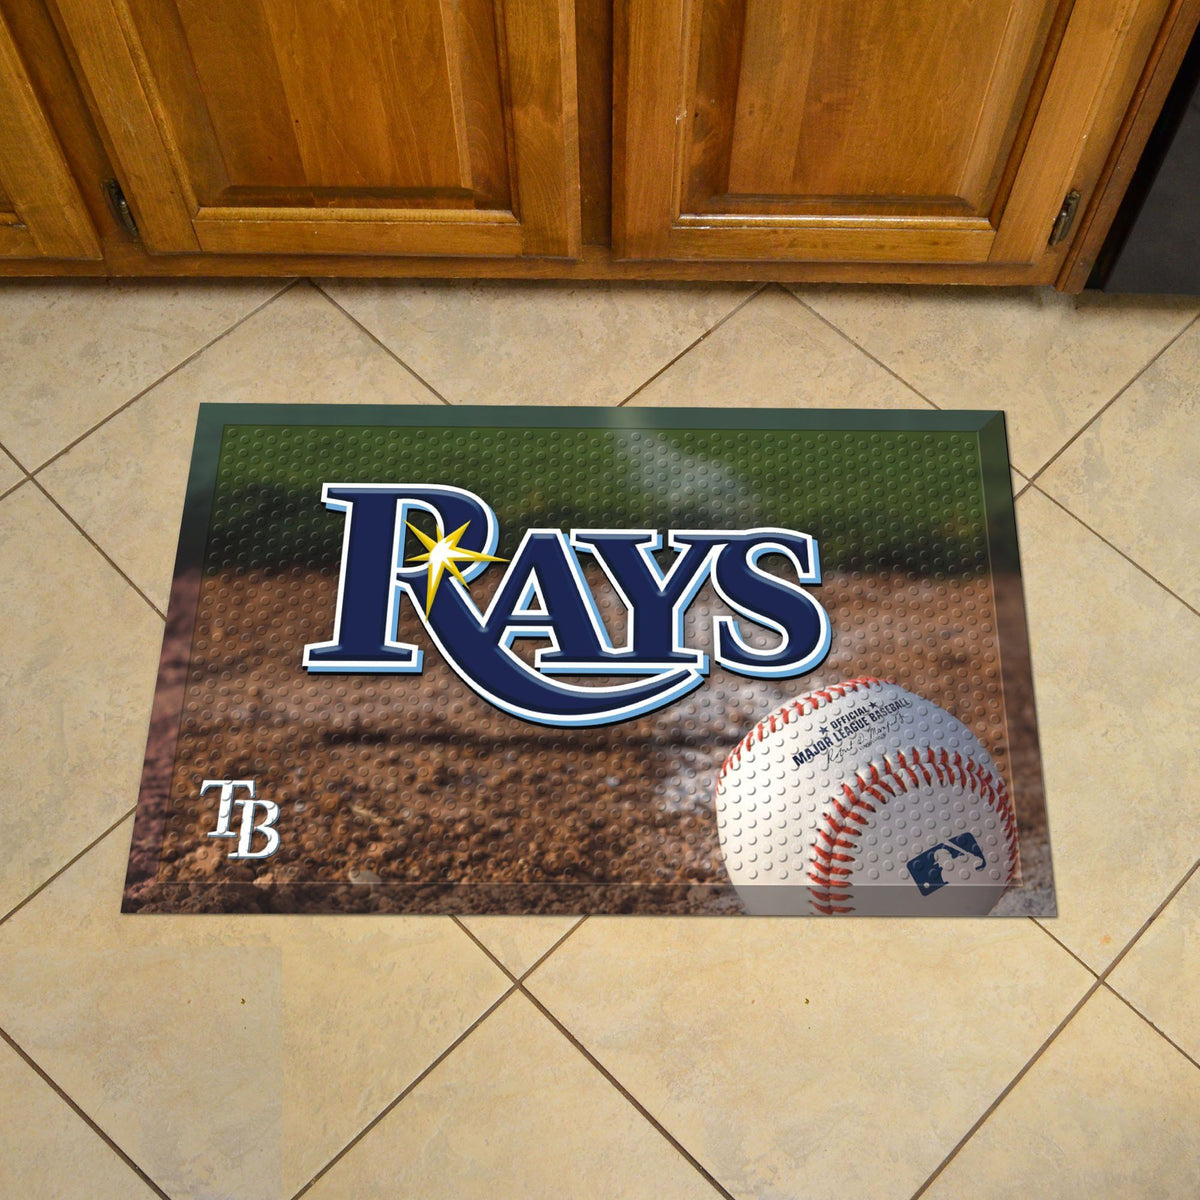 MLB - Scraper Mat MLB Mats, Scraper Mats, Scraper Mat, MLB, Home Fan Mats Tampa Bay Rays 2